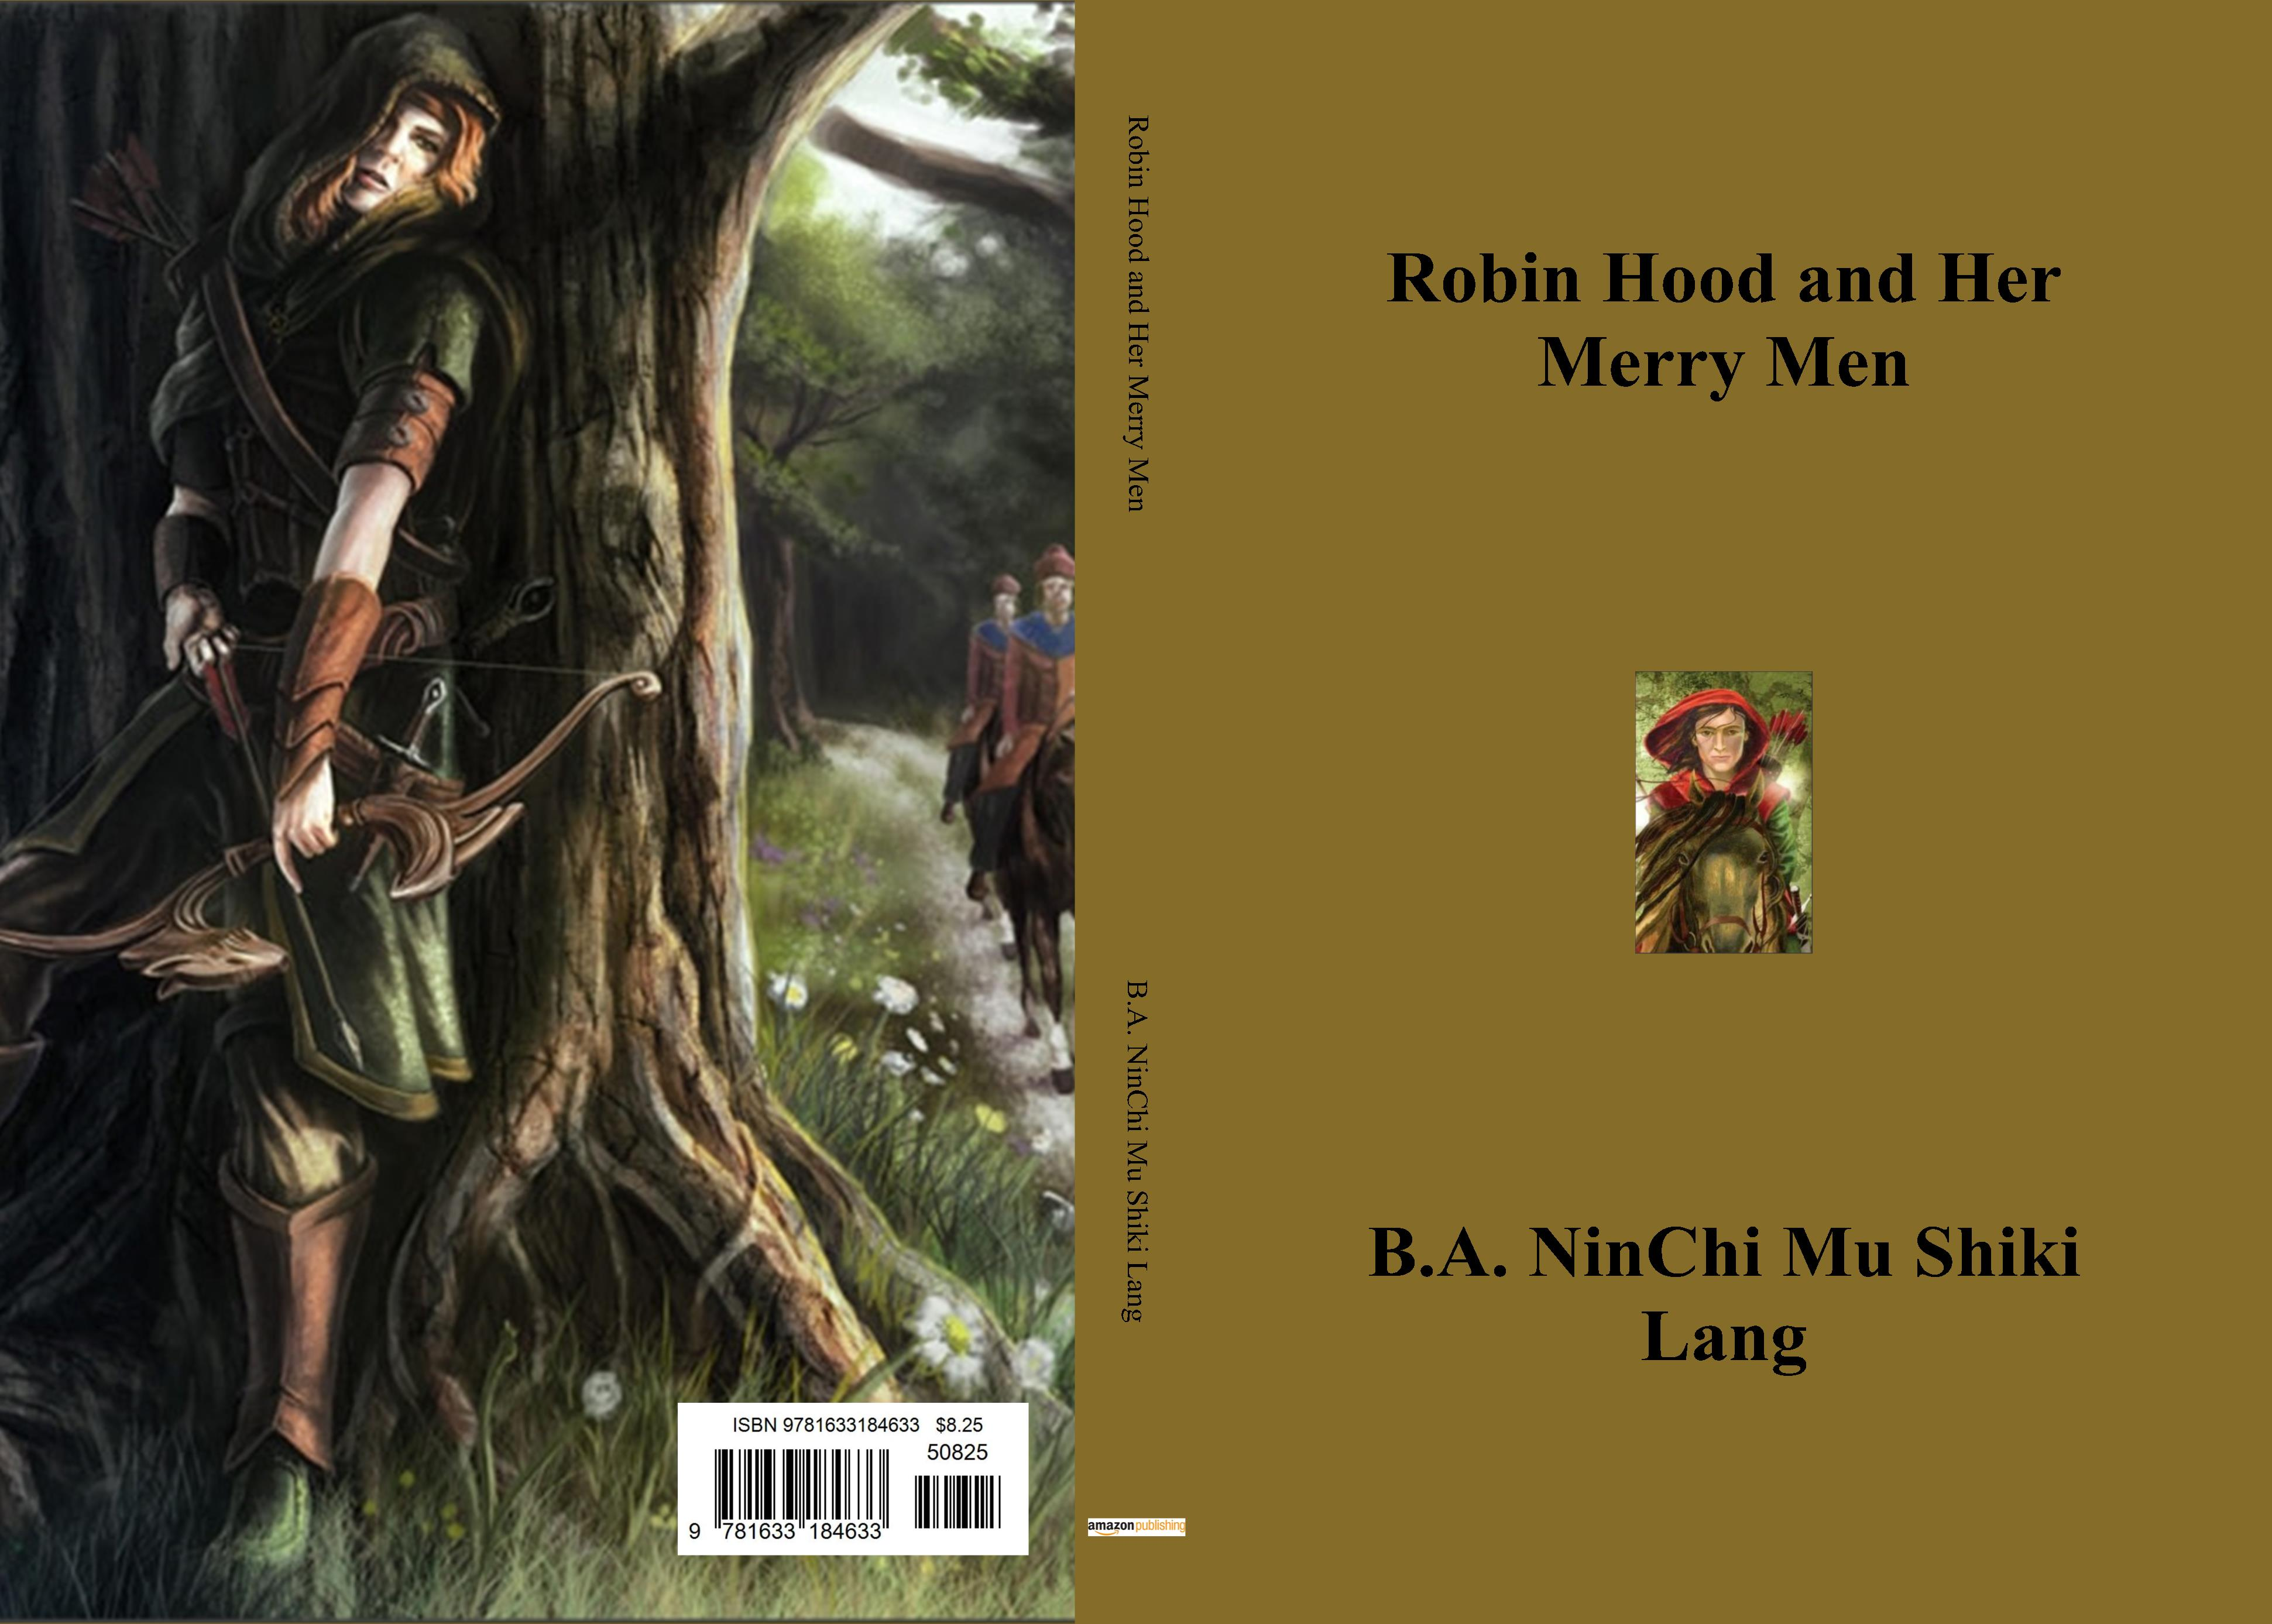 Robin Hood and Her Merry Men cover image